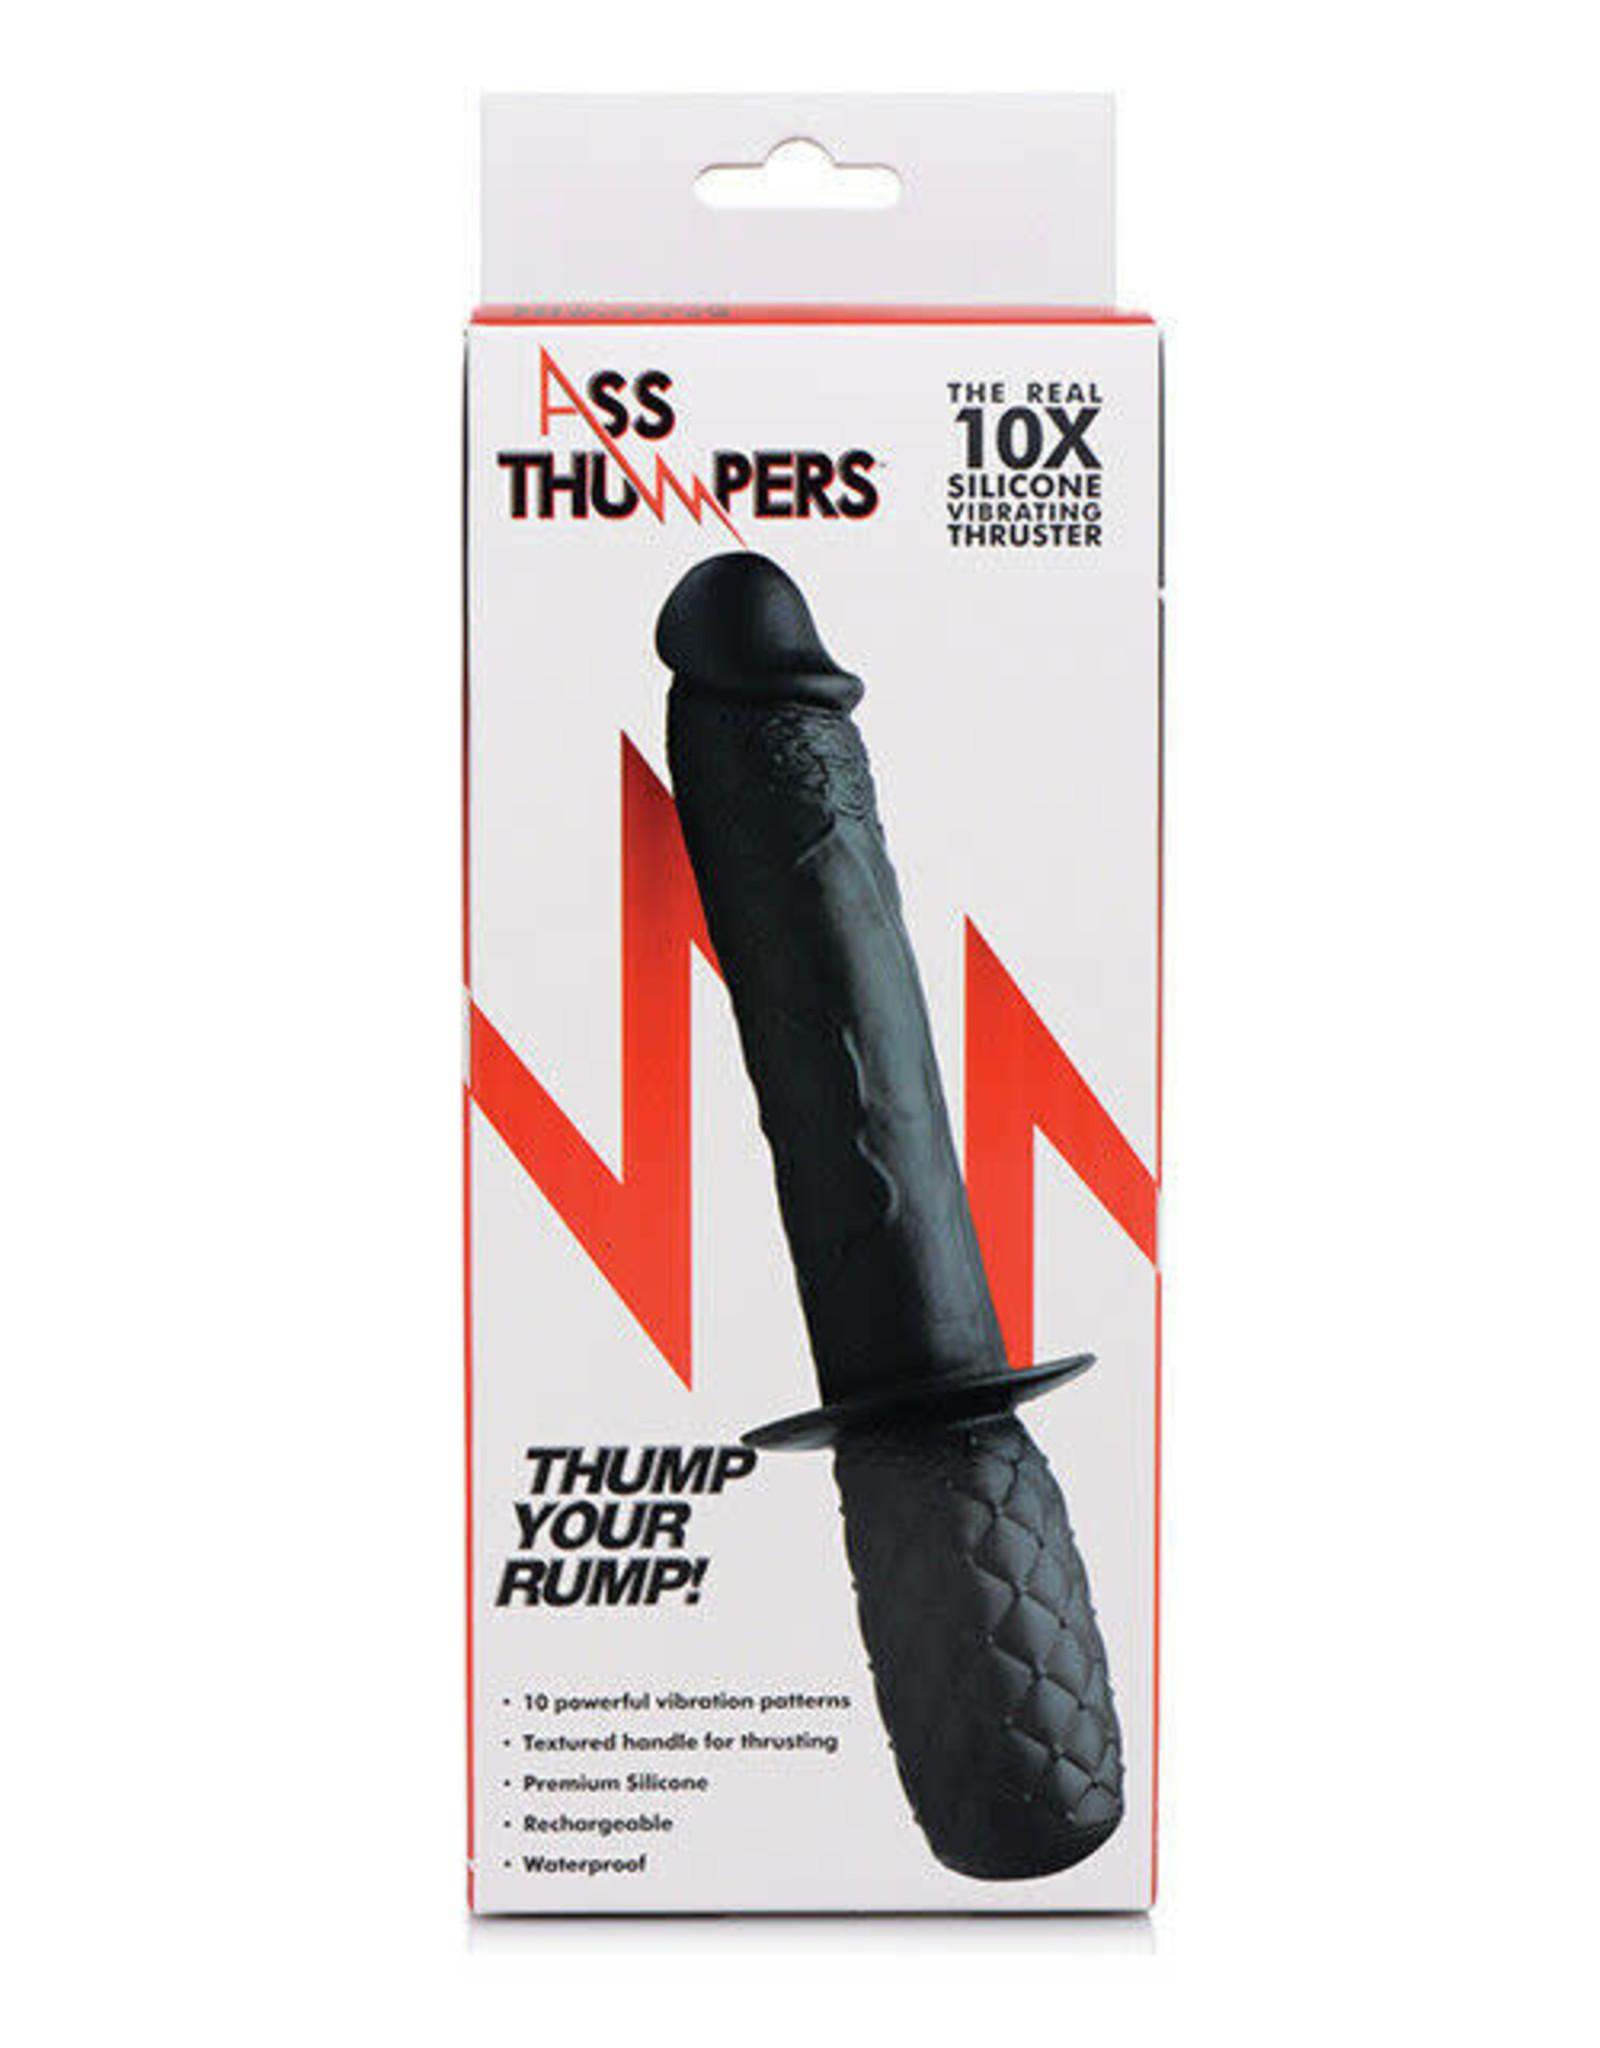 Ass Thumpers Ass Thumpers Real 10x Silicone Vibrating Thruster - Black